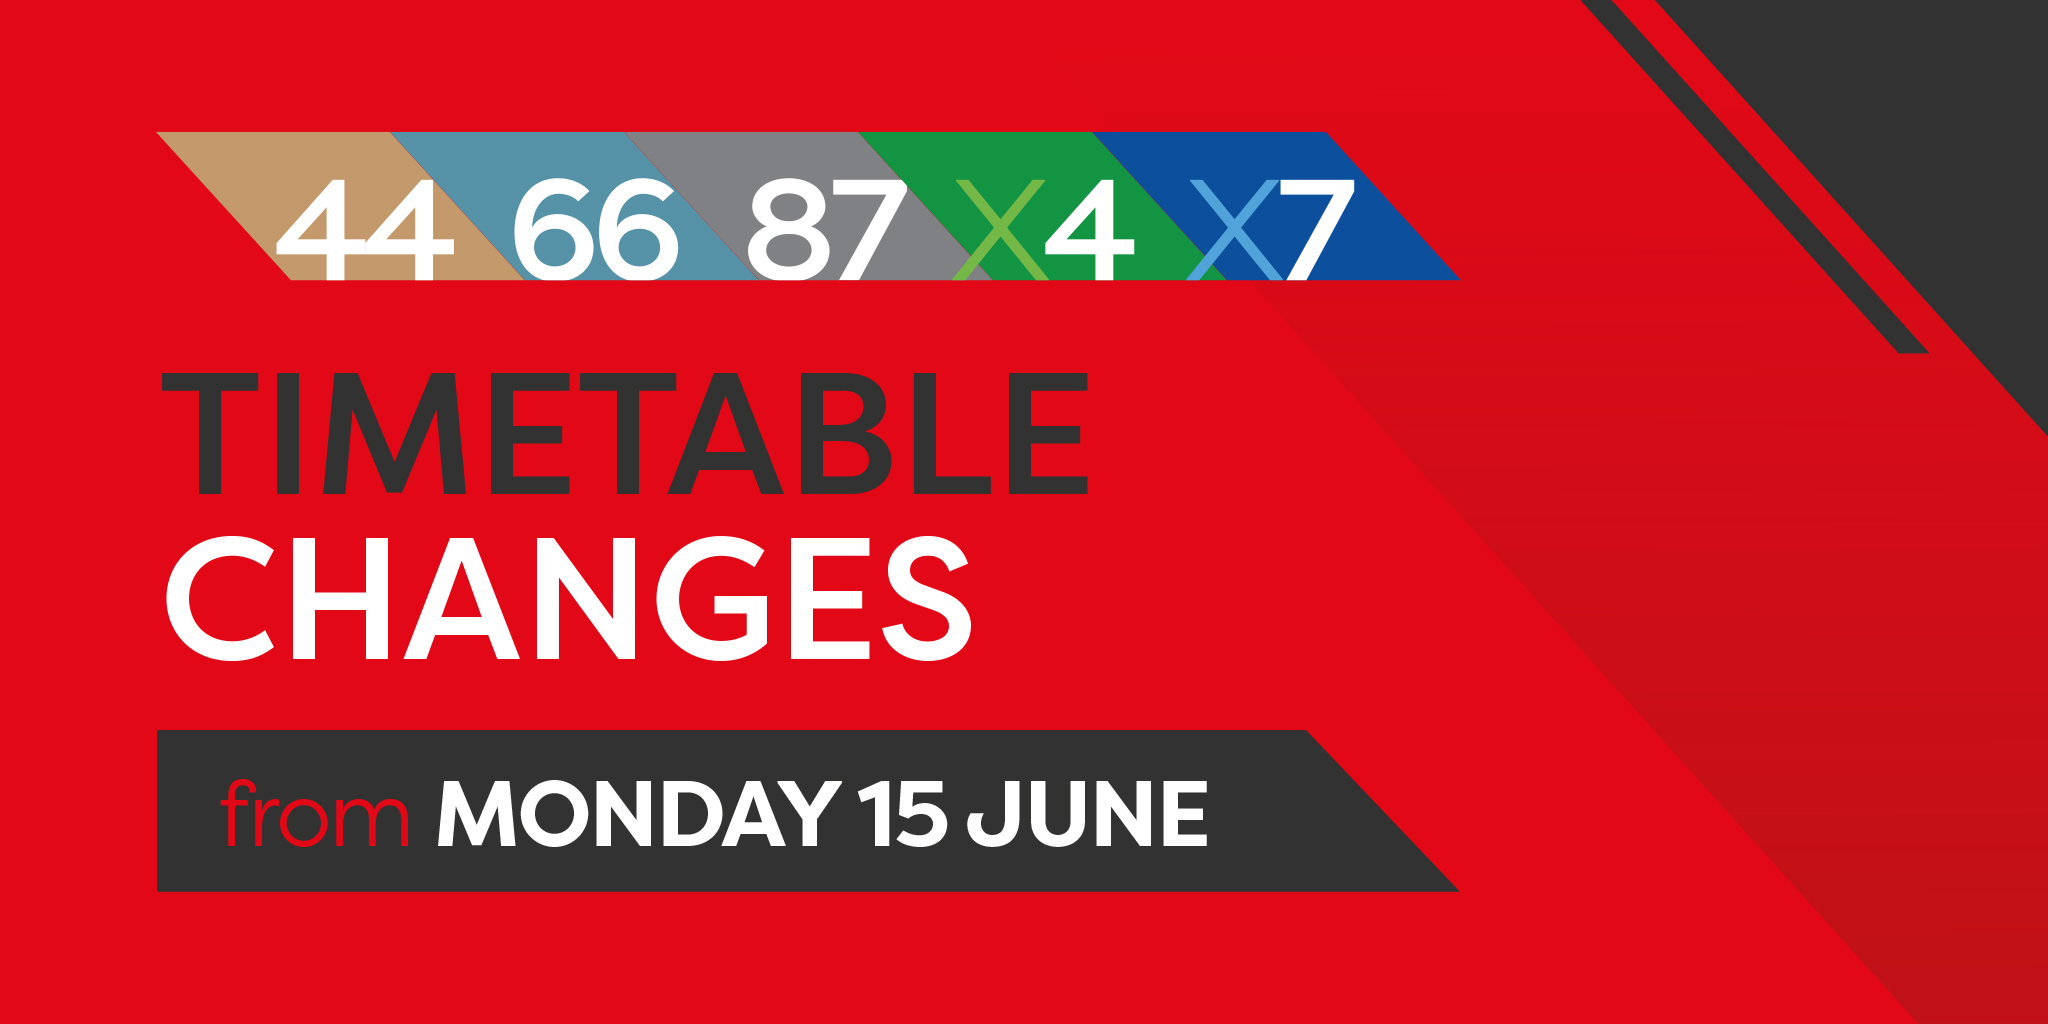 Image reading 'Timetable changes from Monday 15th June for routes 44, 66, 87, X4 and X7'